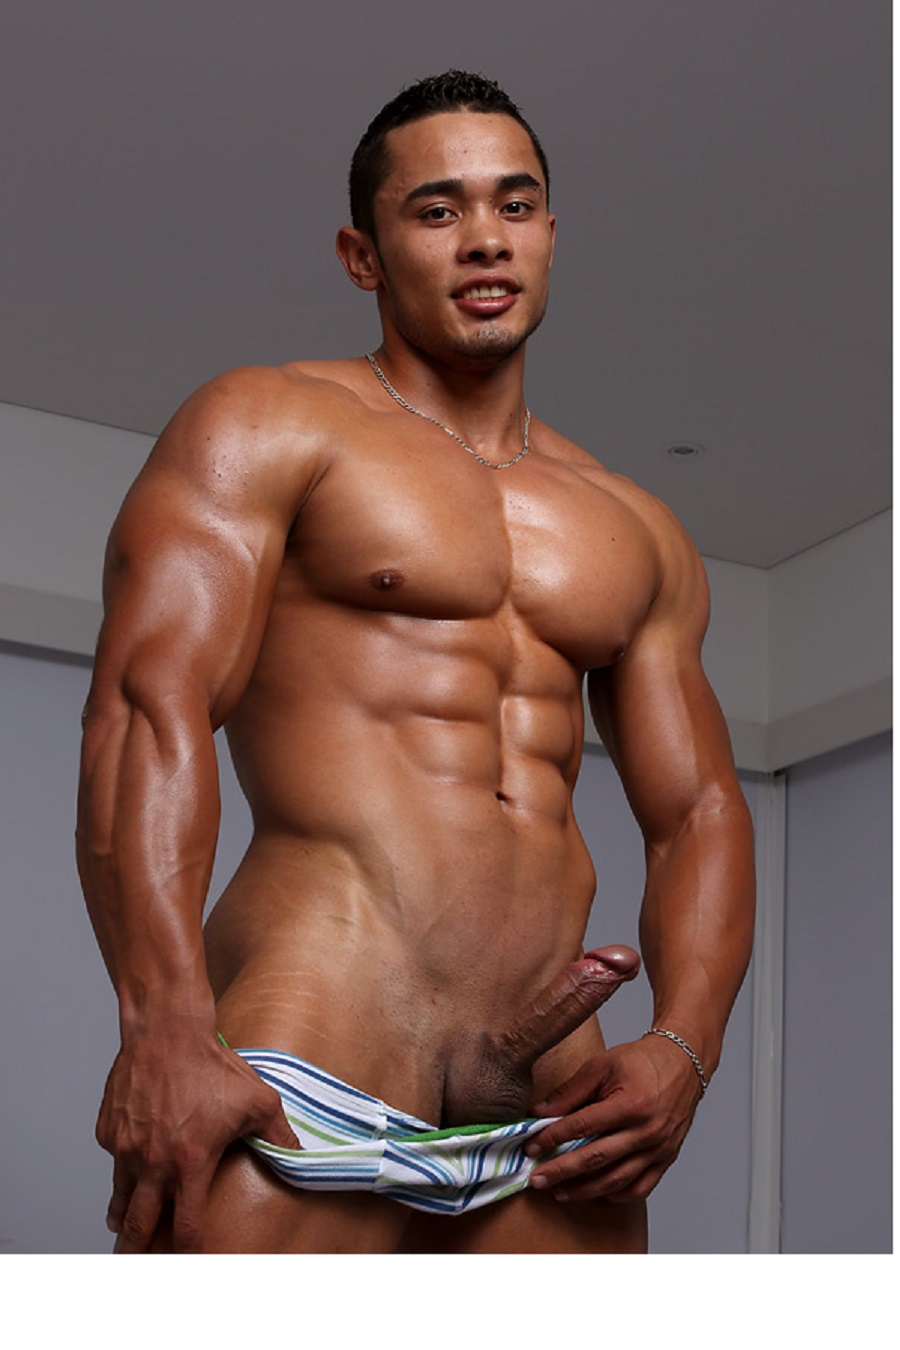 Huge naked musclemen photos gallery